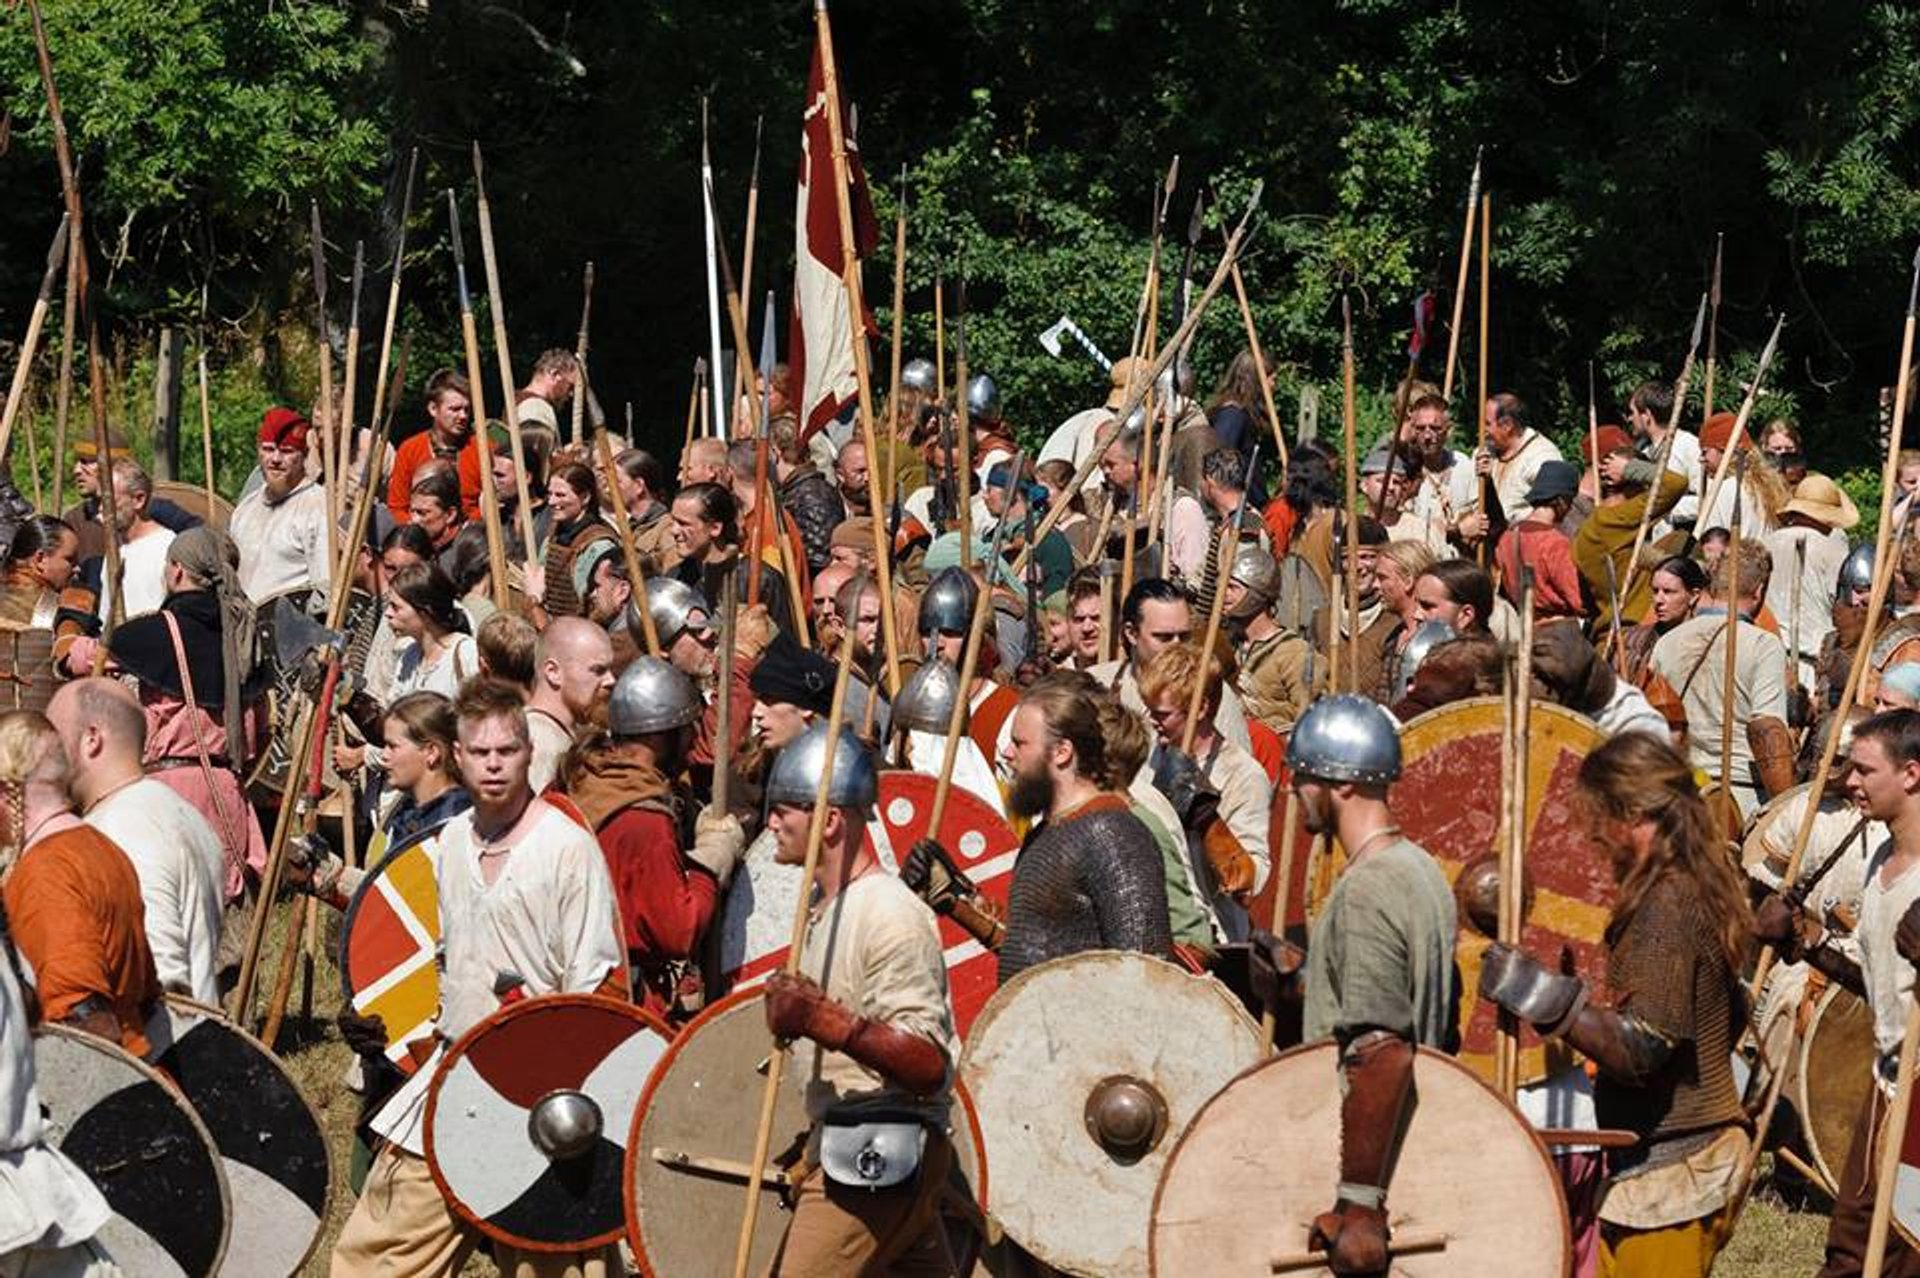 Moesgård Viking Moot in Denmark 2019 - Best Time